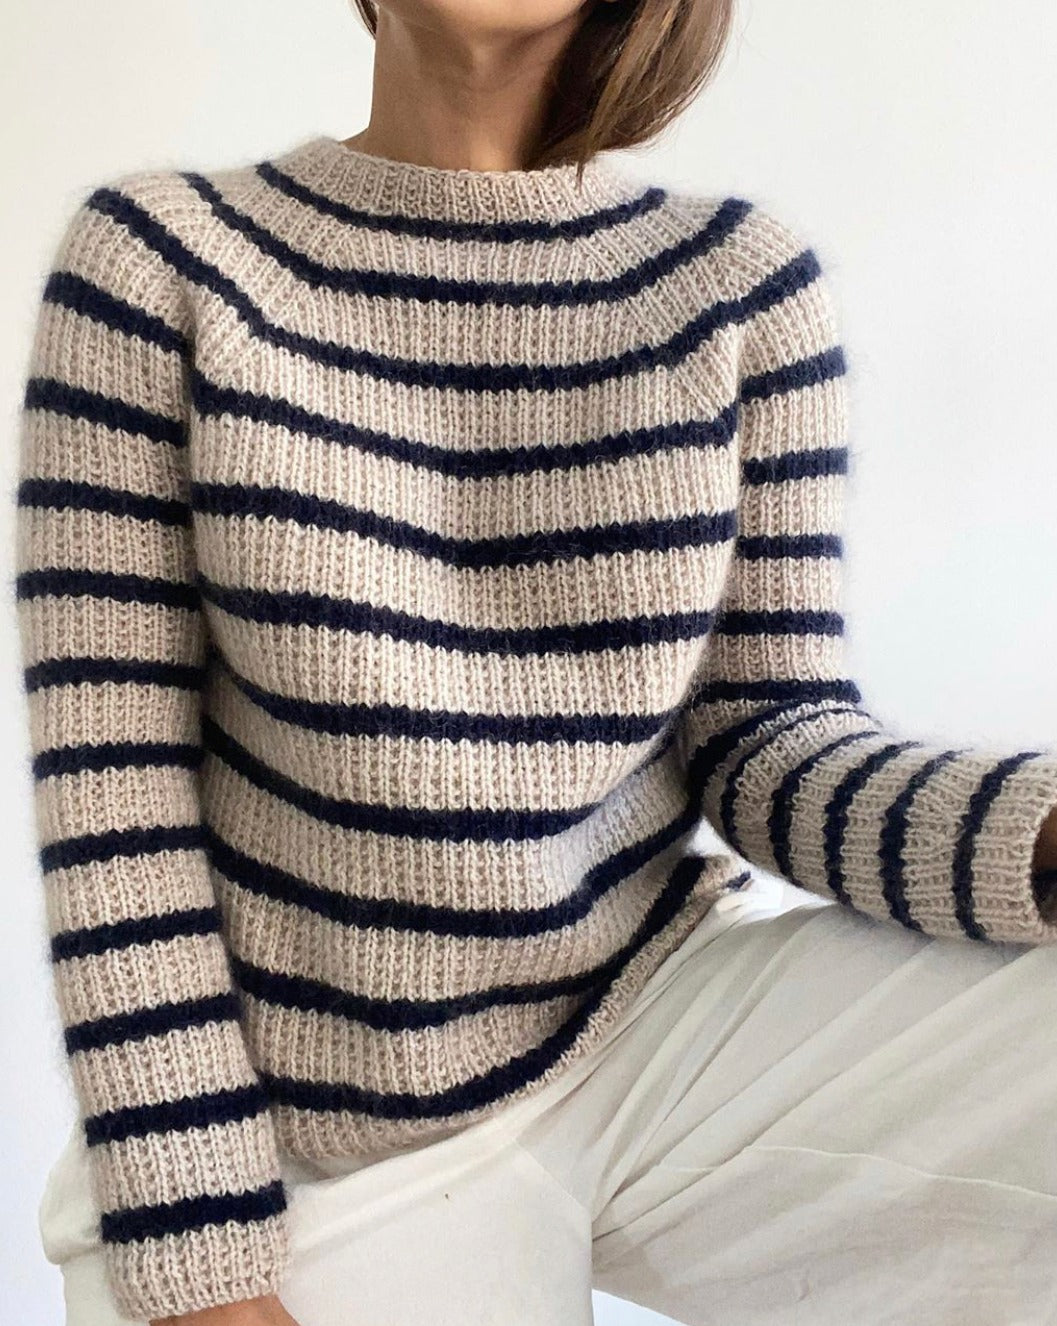 Sweater No. 12 - NO